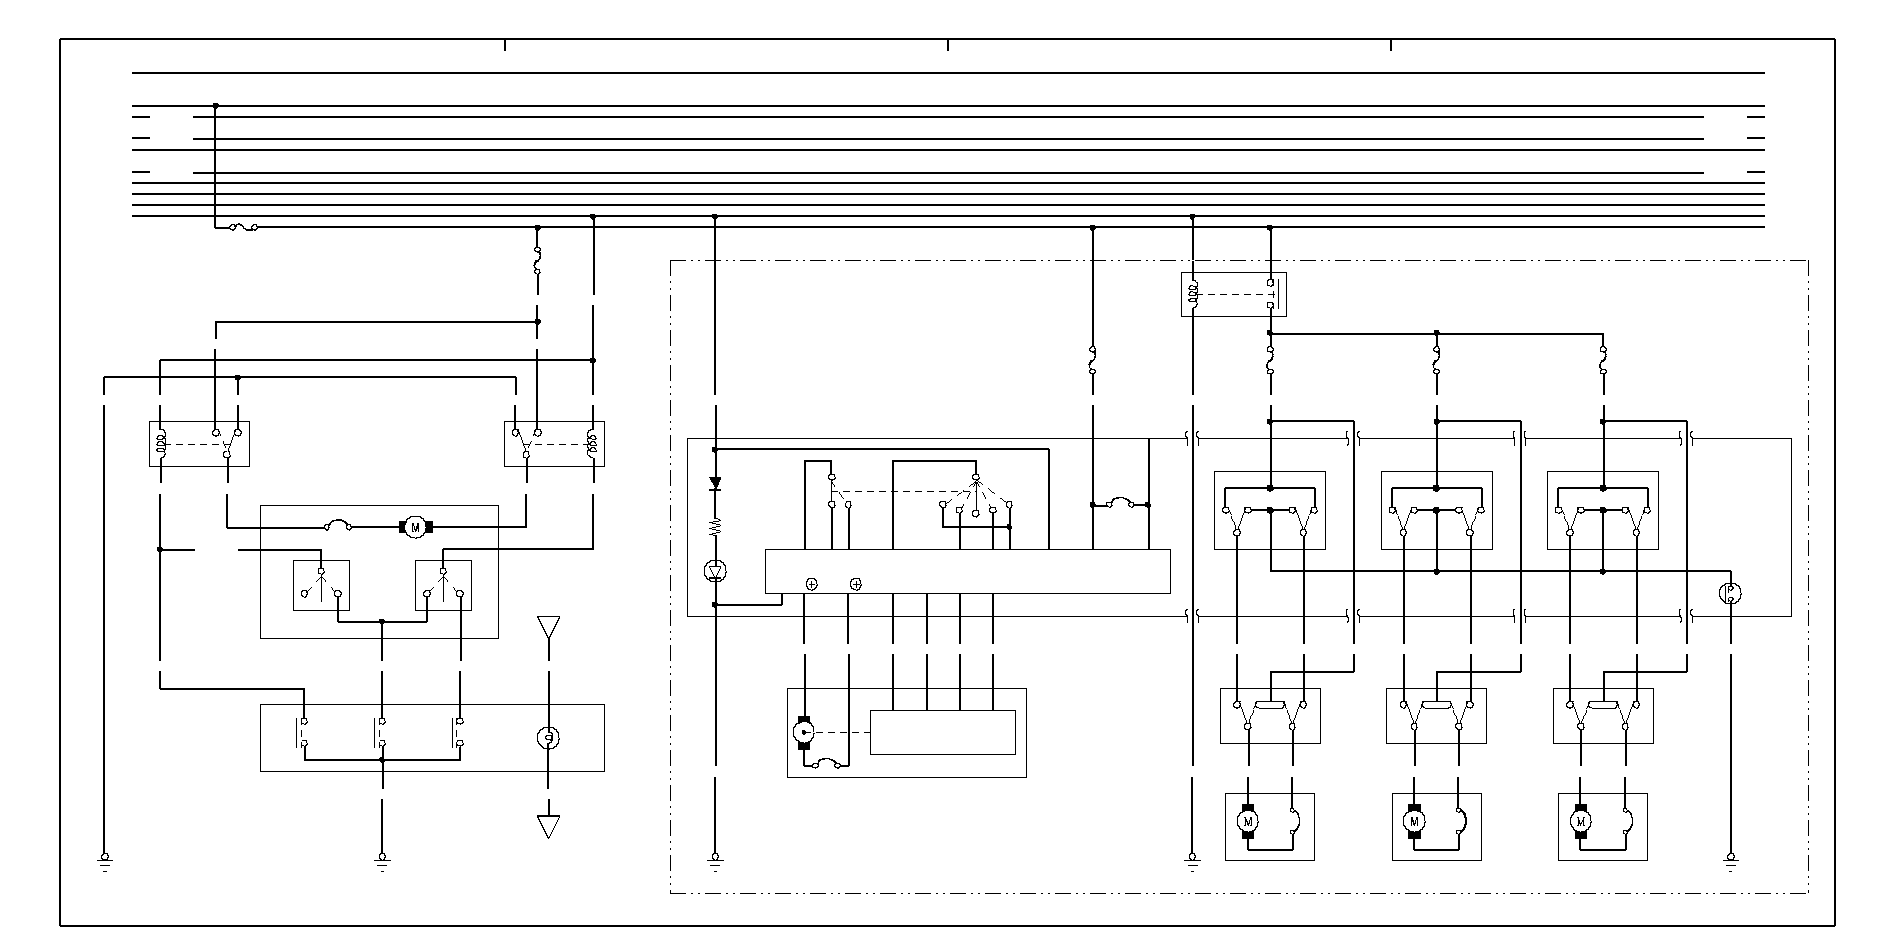 Cr 500 Wiring Diagram on fuse box for honda crv 2002